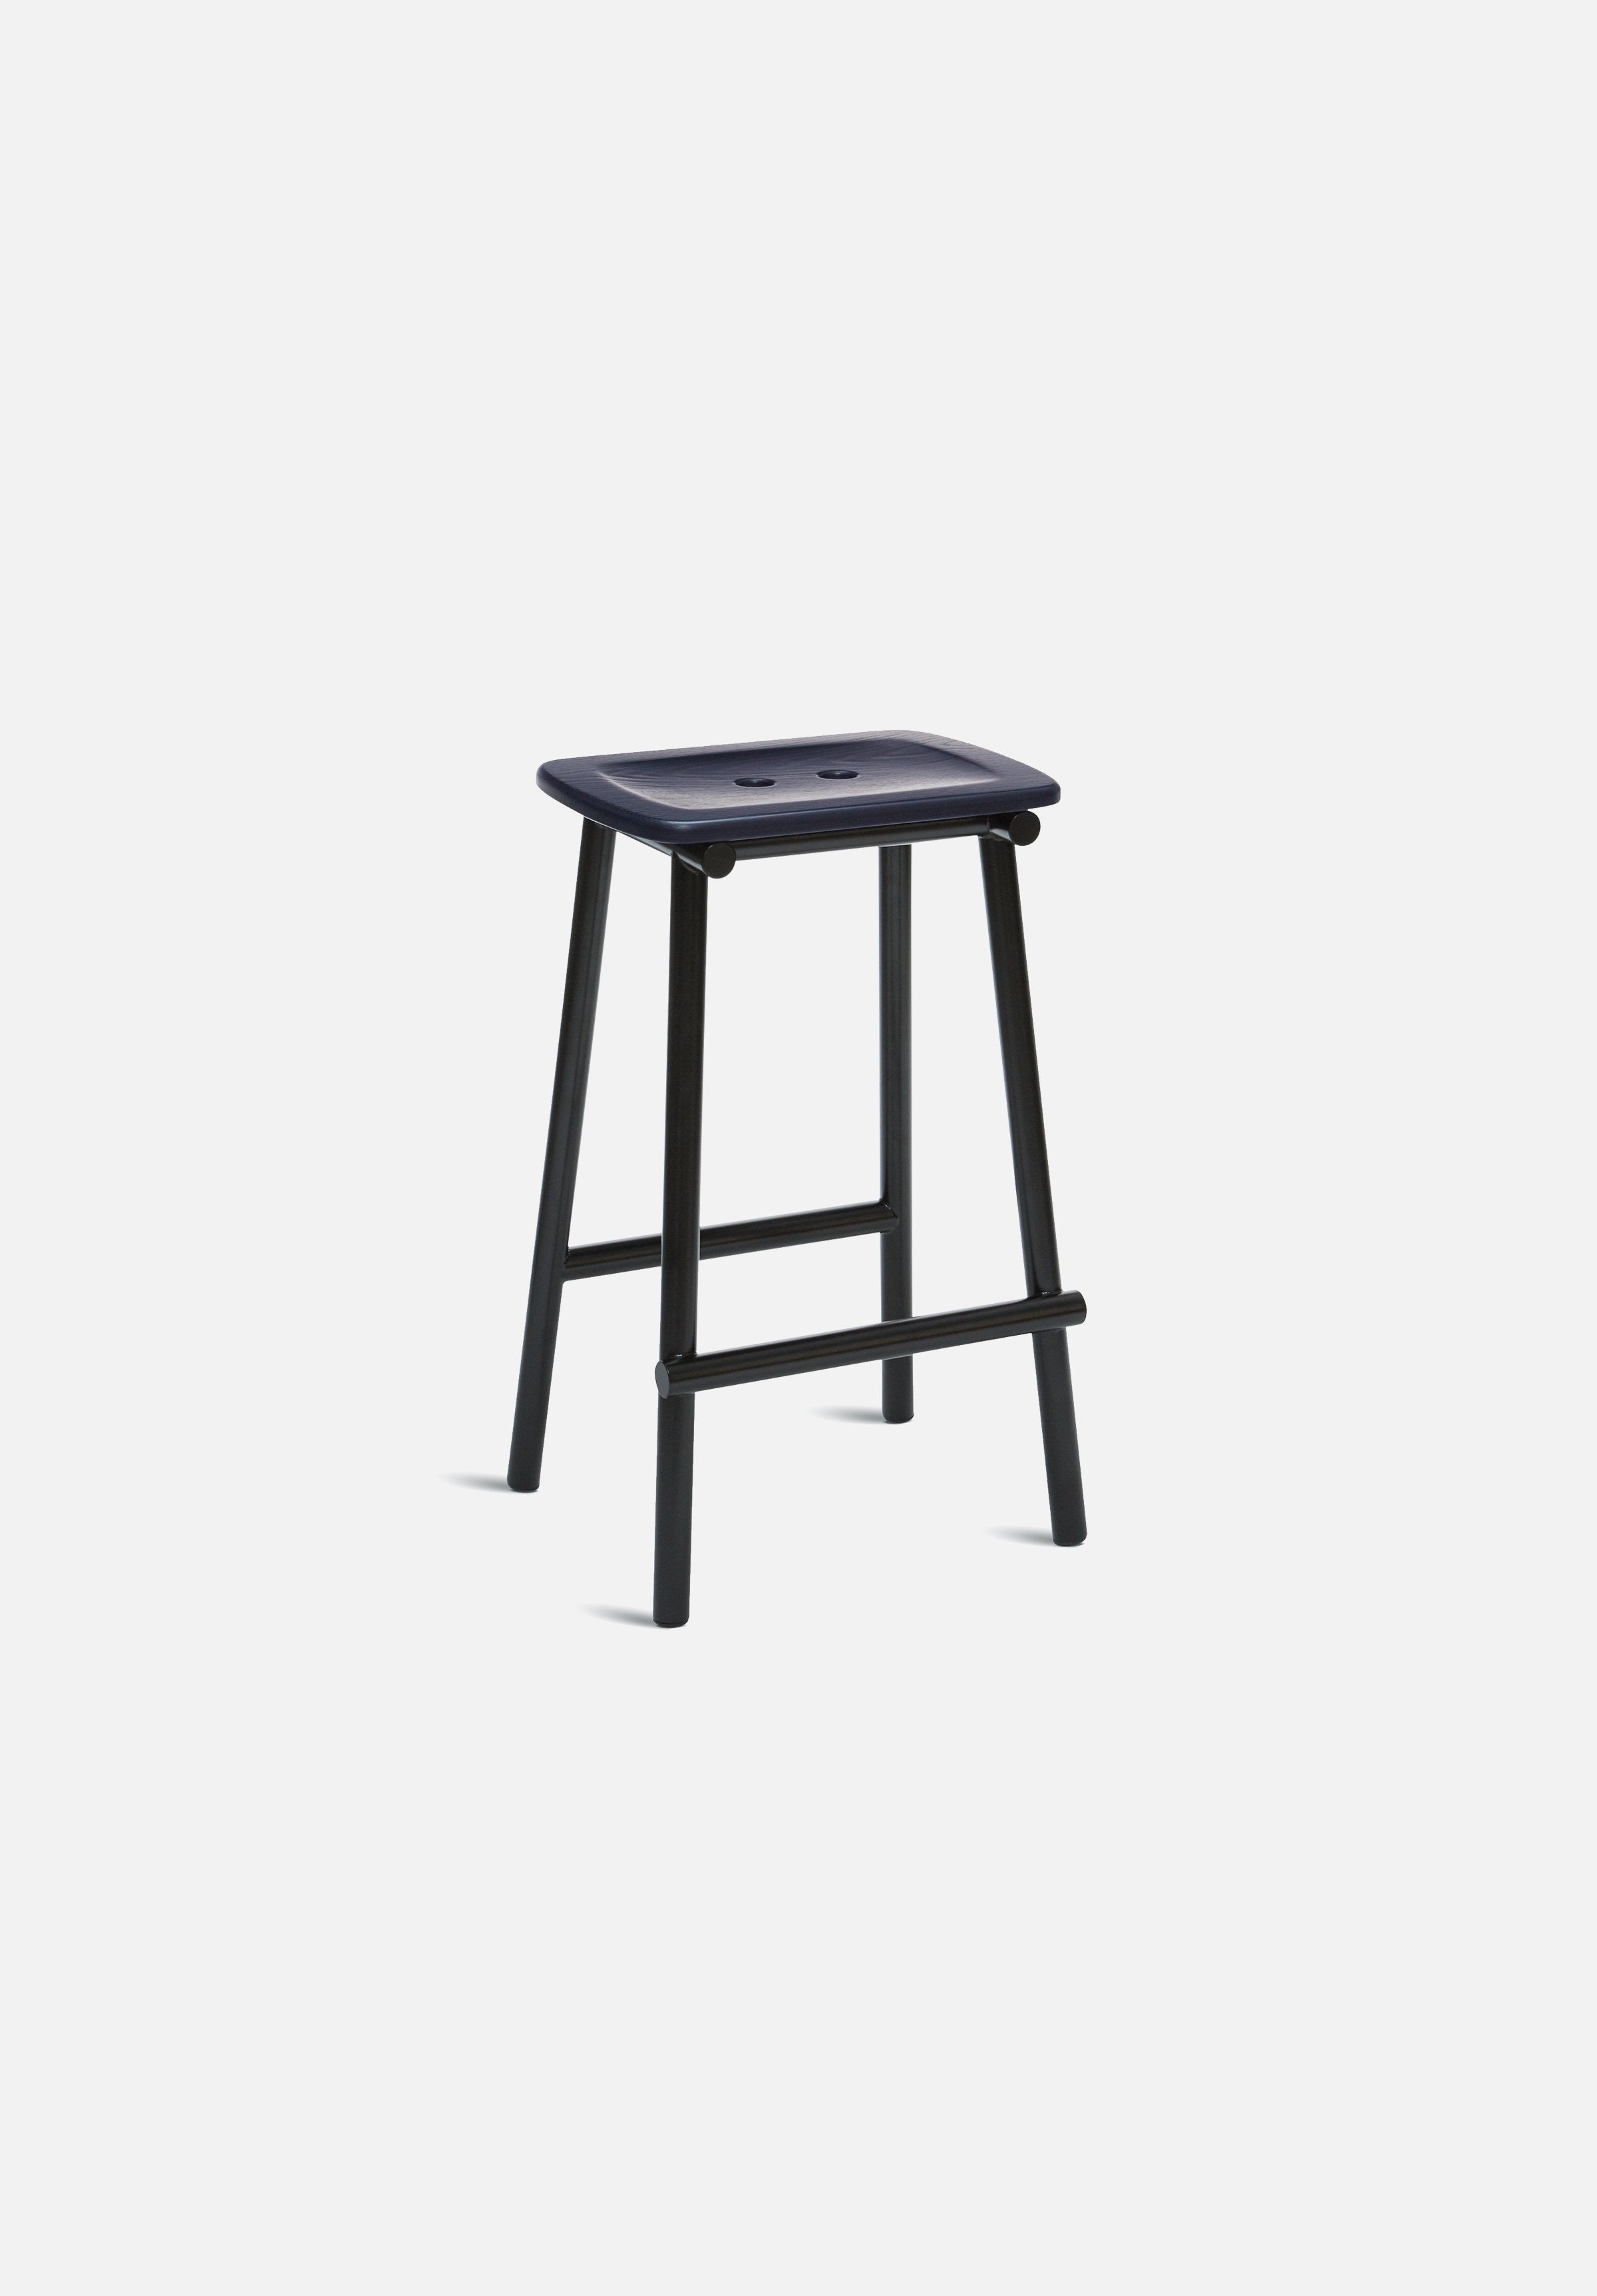 Tubby Counter Stool-Faye Toogood-Please Wait to be Seated-Painted Navy Ash- - Average Toronto Canada Design